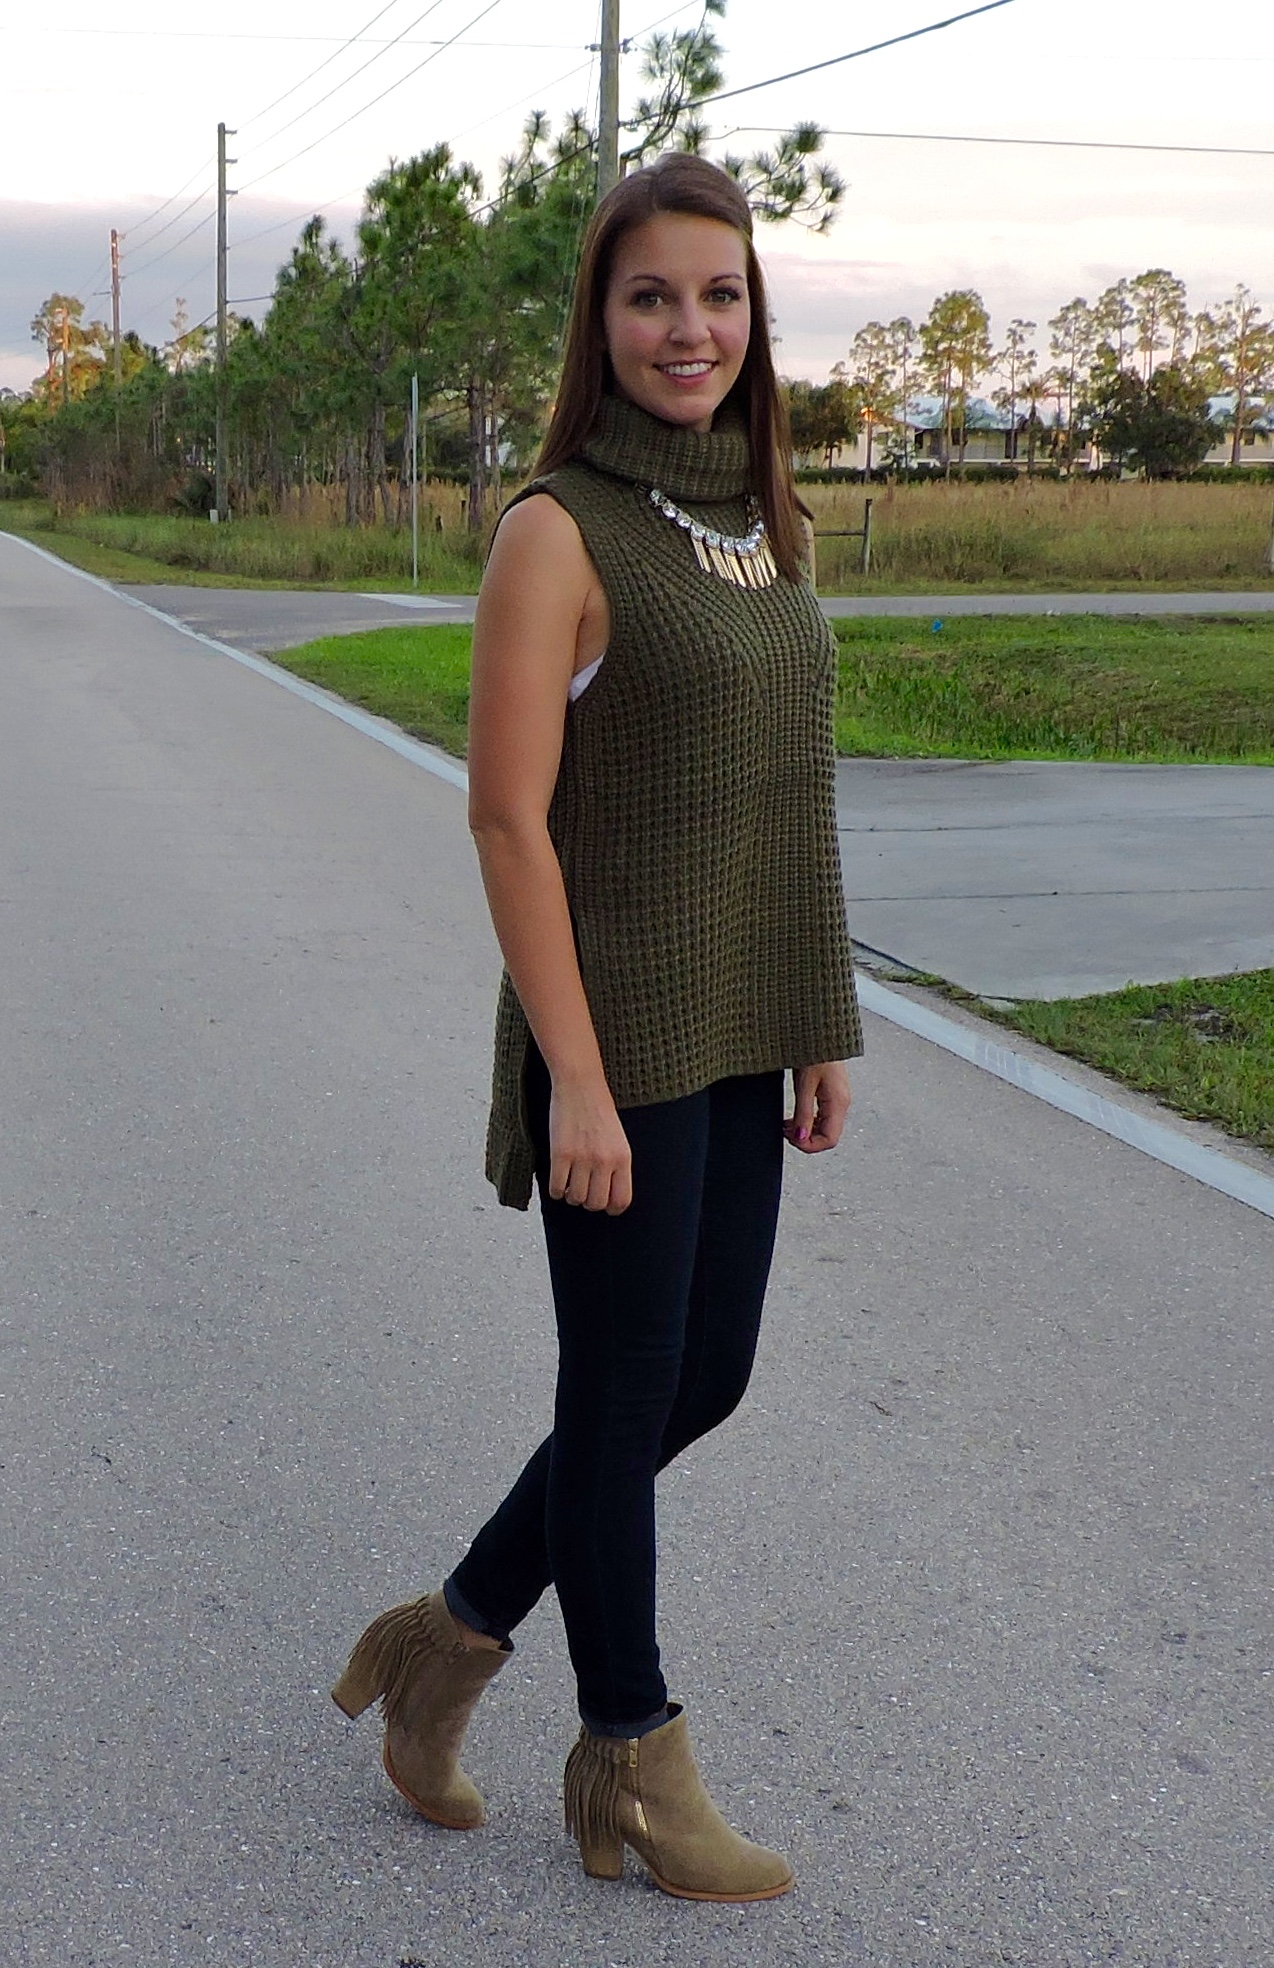 DSCN0188 - Statement Necklace With Turtleneck by Florida fashion blogger Absolutely Annie